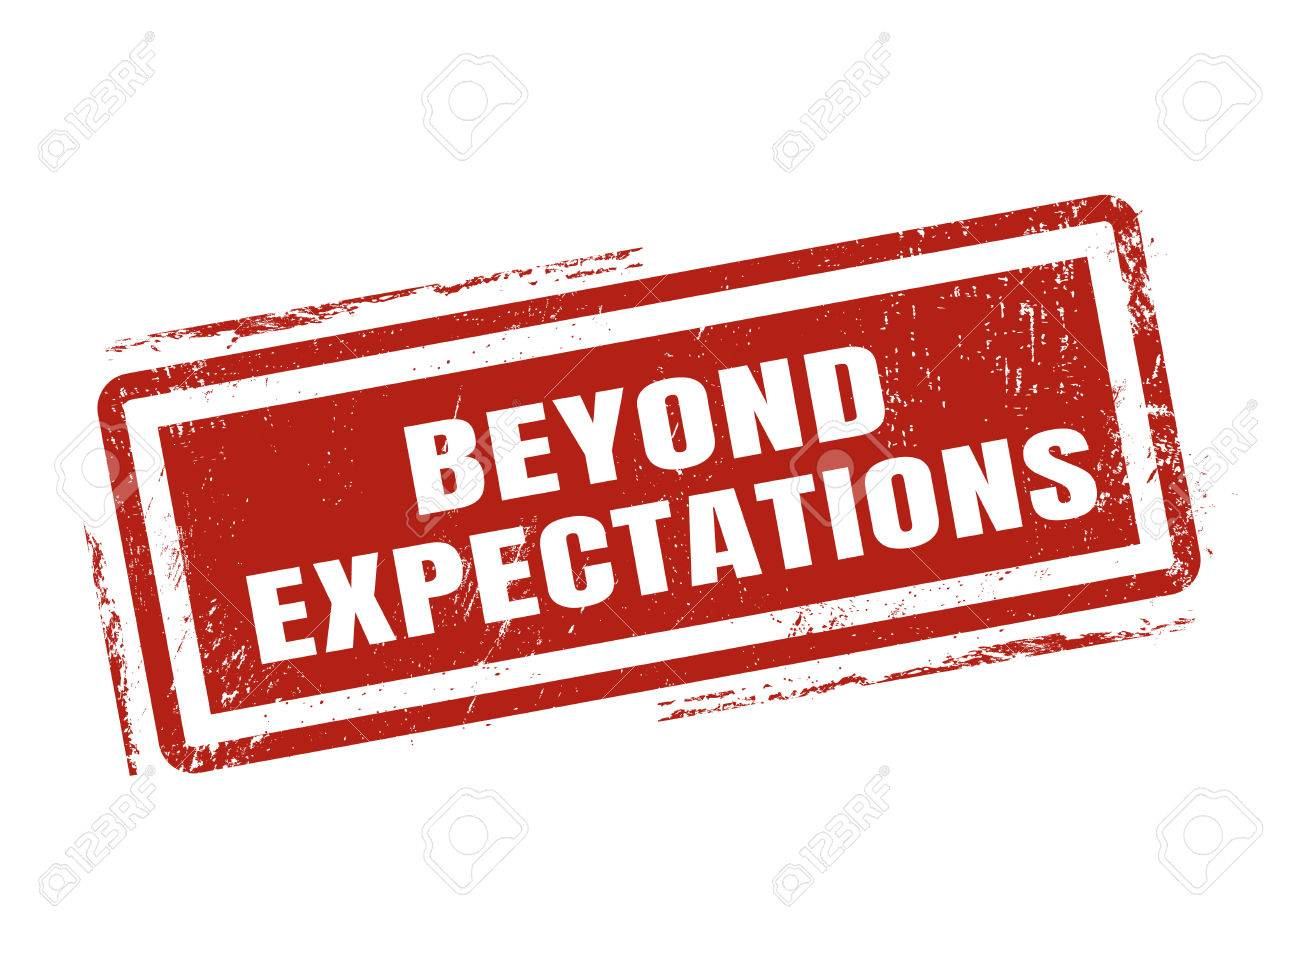 5 Reviews for Beyond Expectations